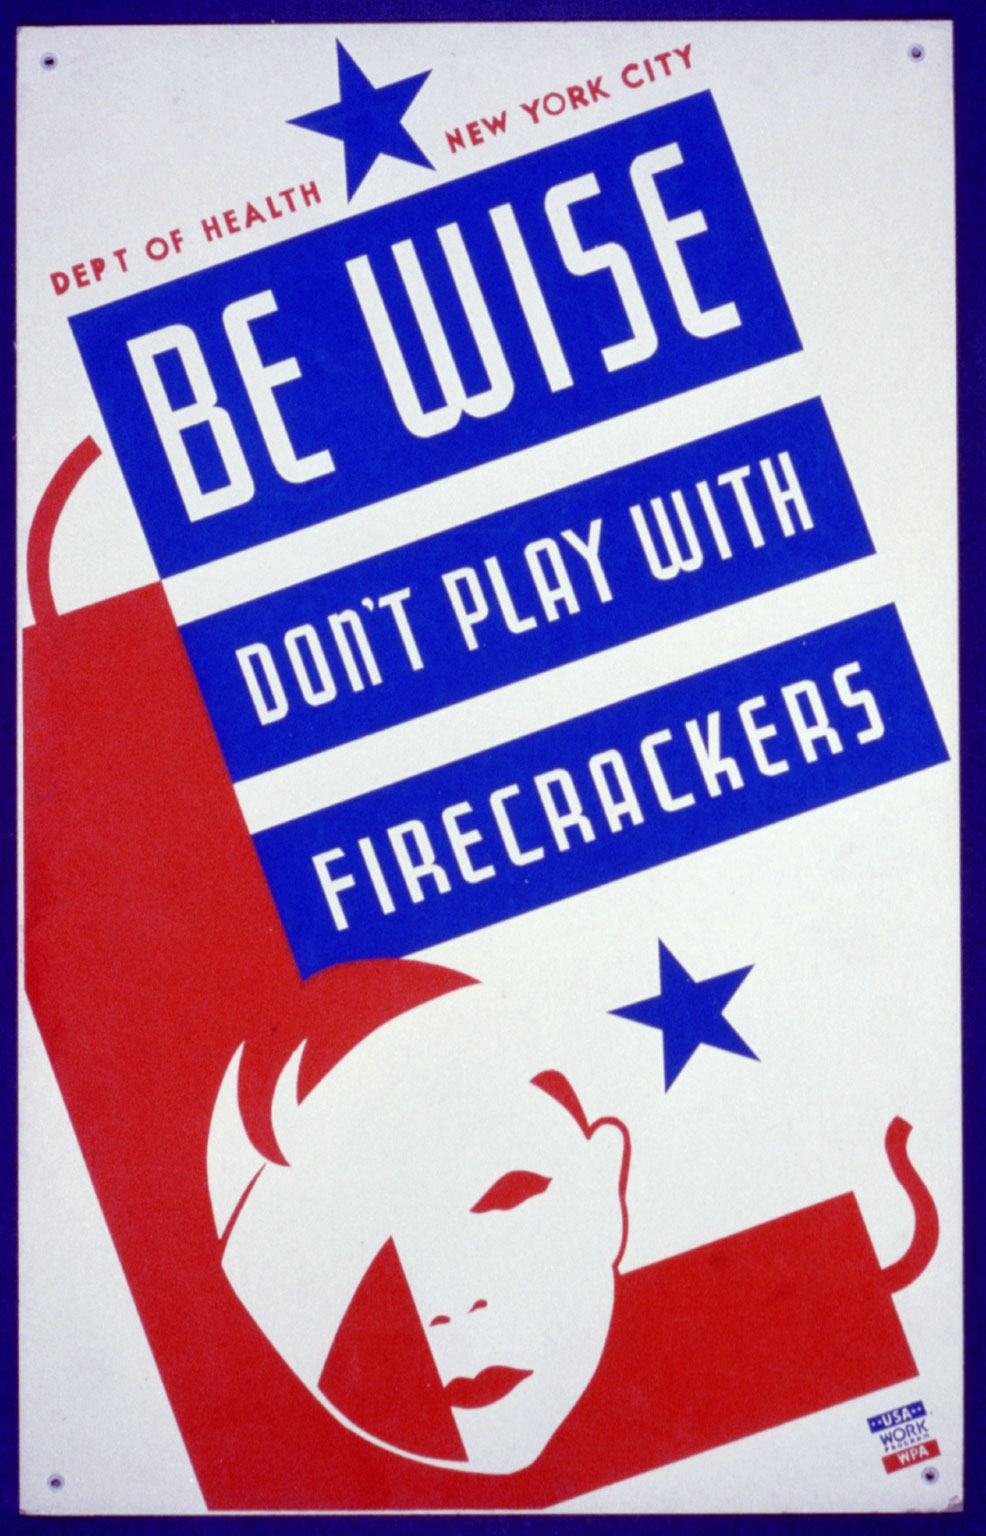 Be wise. Don't play with firecrackers : Department of Health, New York City.